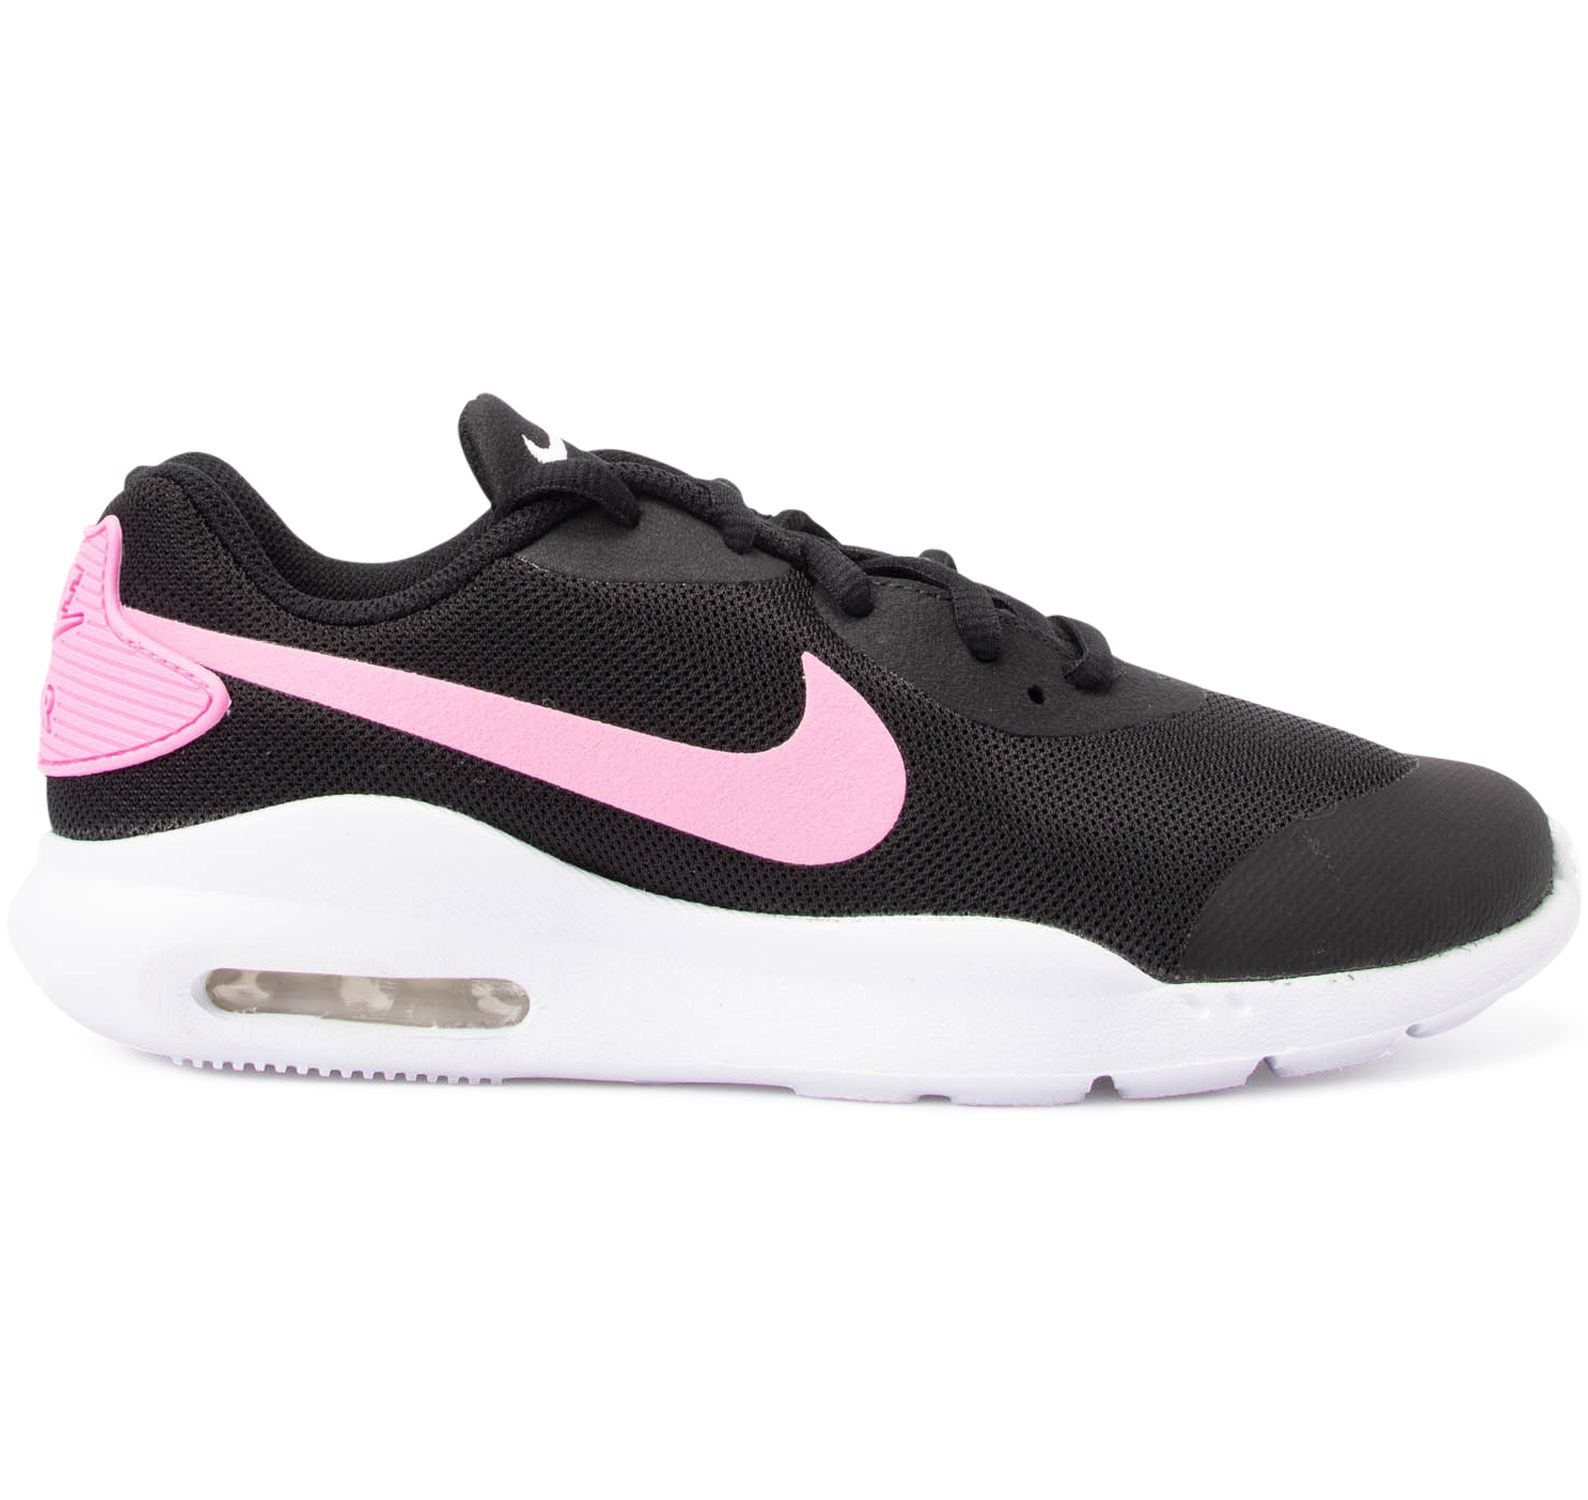 nike air max raito big kids' s, blackpsychic pink white